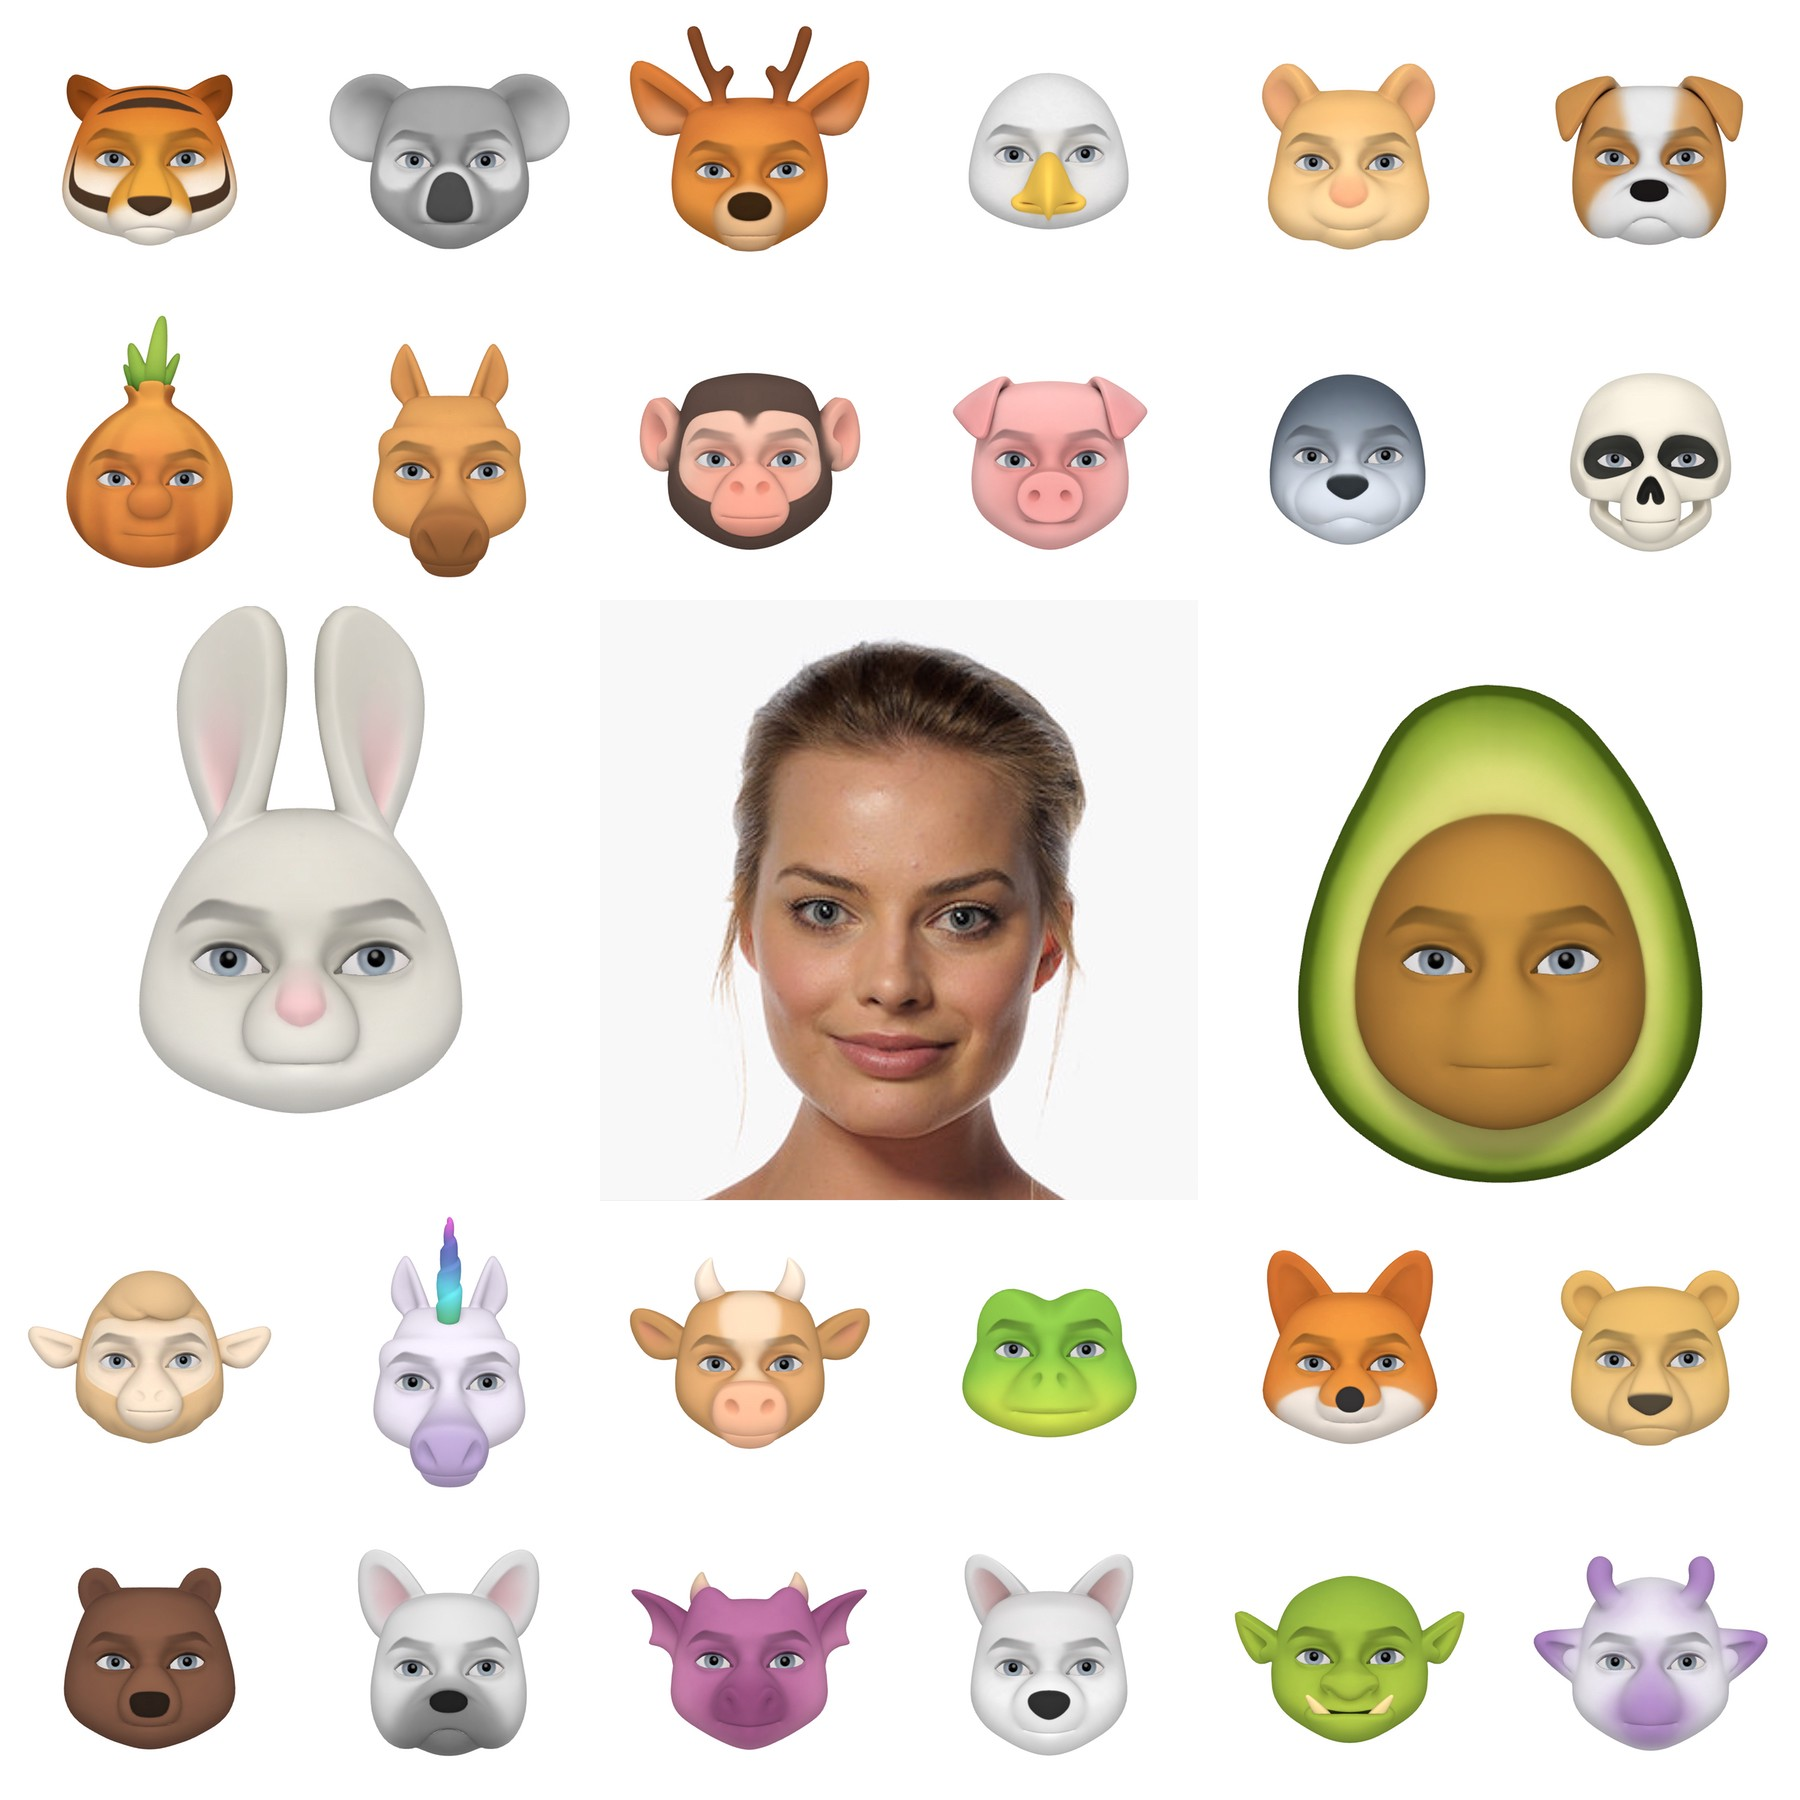 Russian engineers developed an AI based avatars app for old iPhones